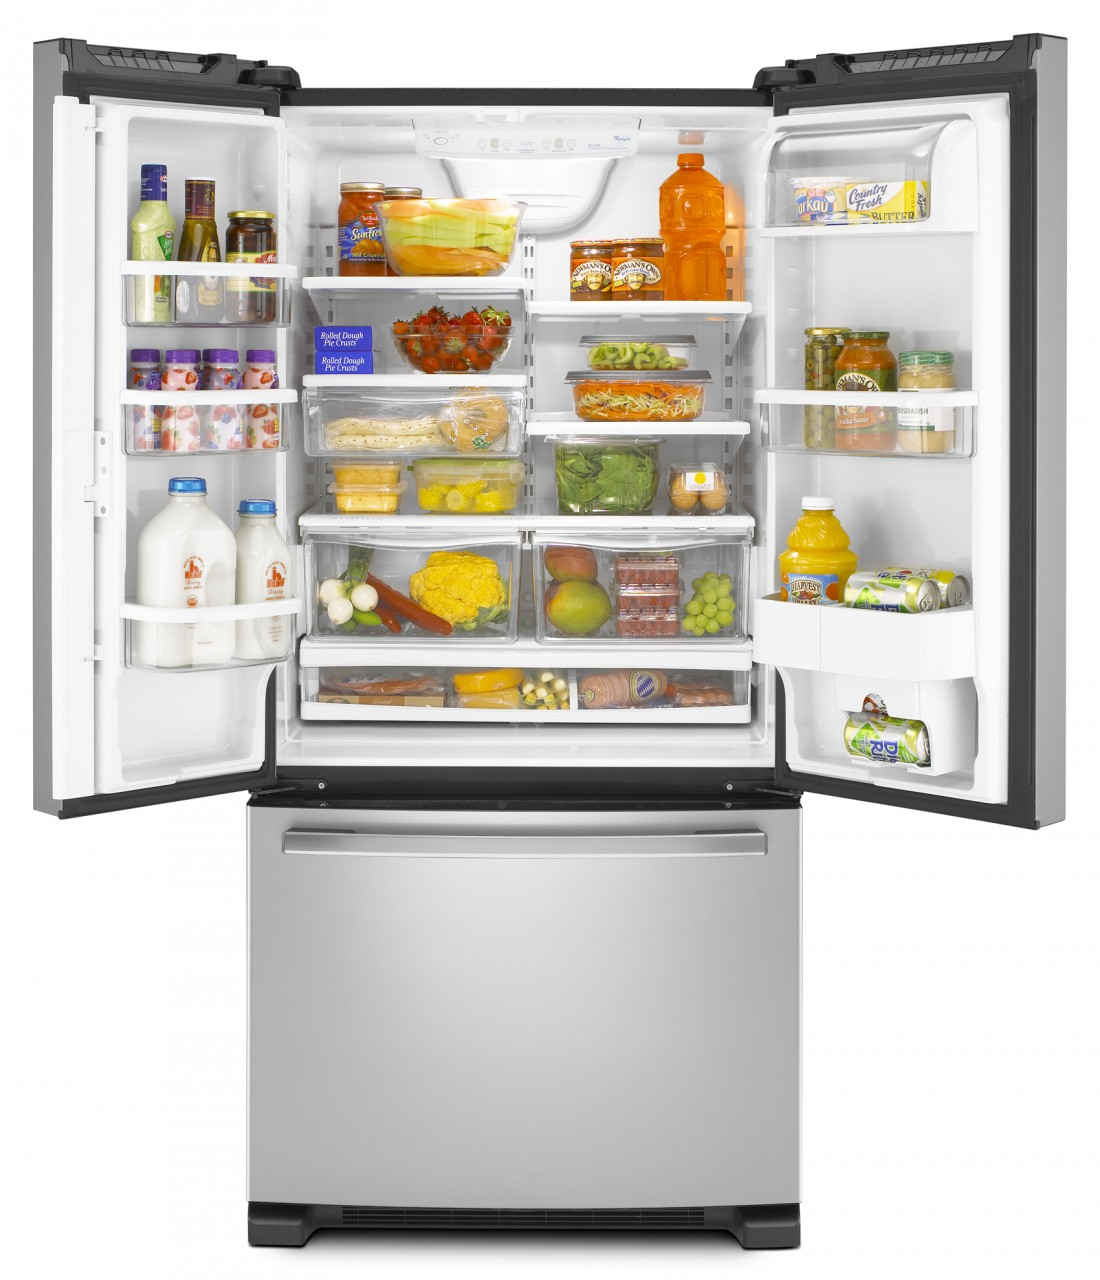 10 Refrigerators: Whirlpool Gold French Door Refrigerator GX2FHDXVY